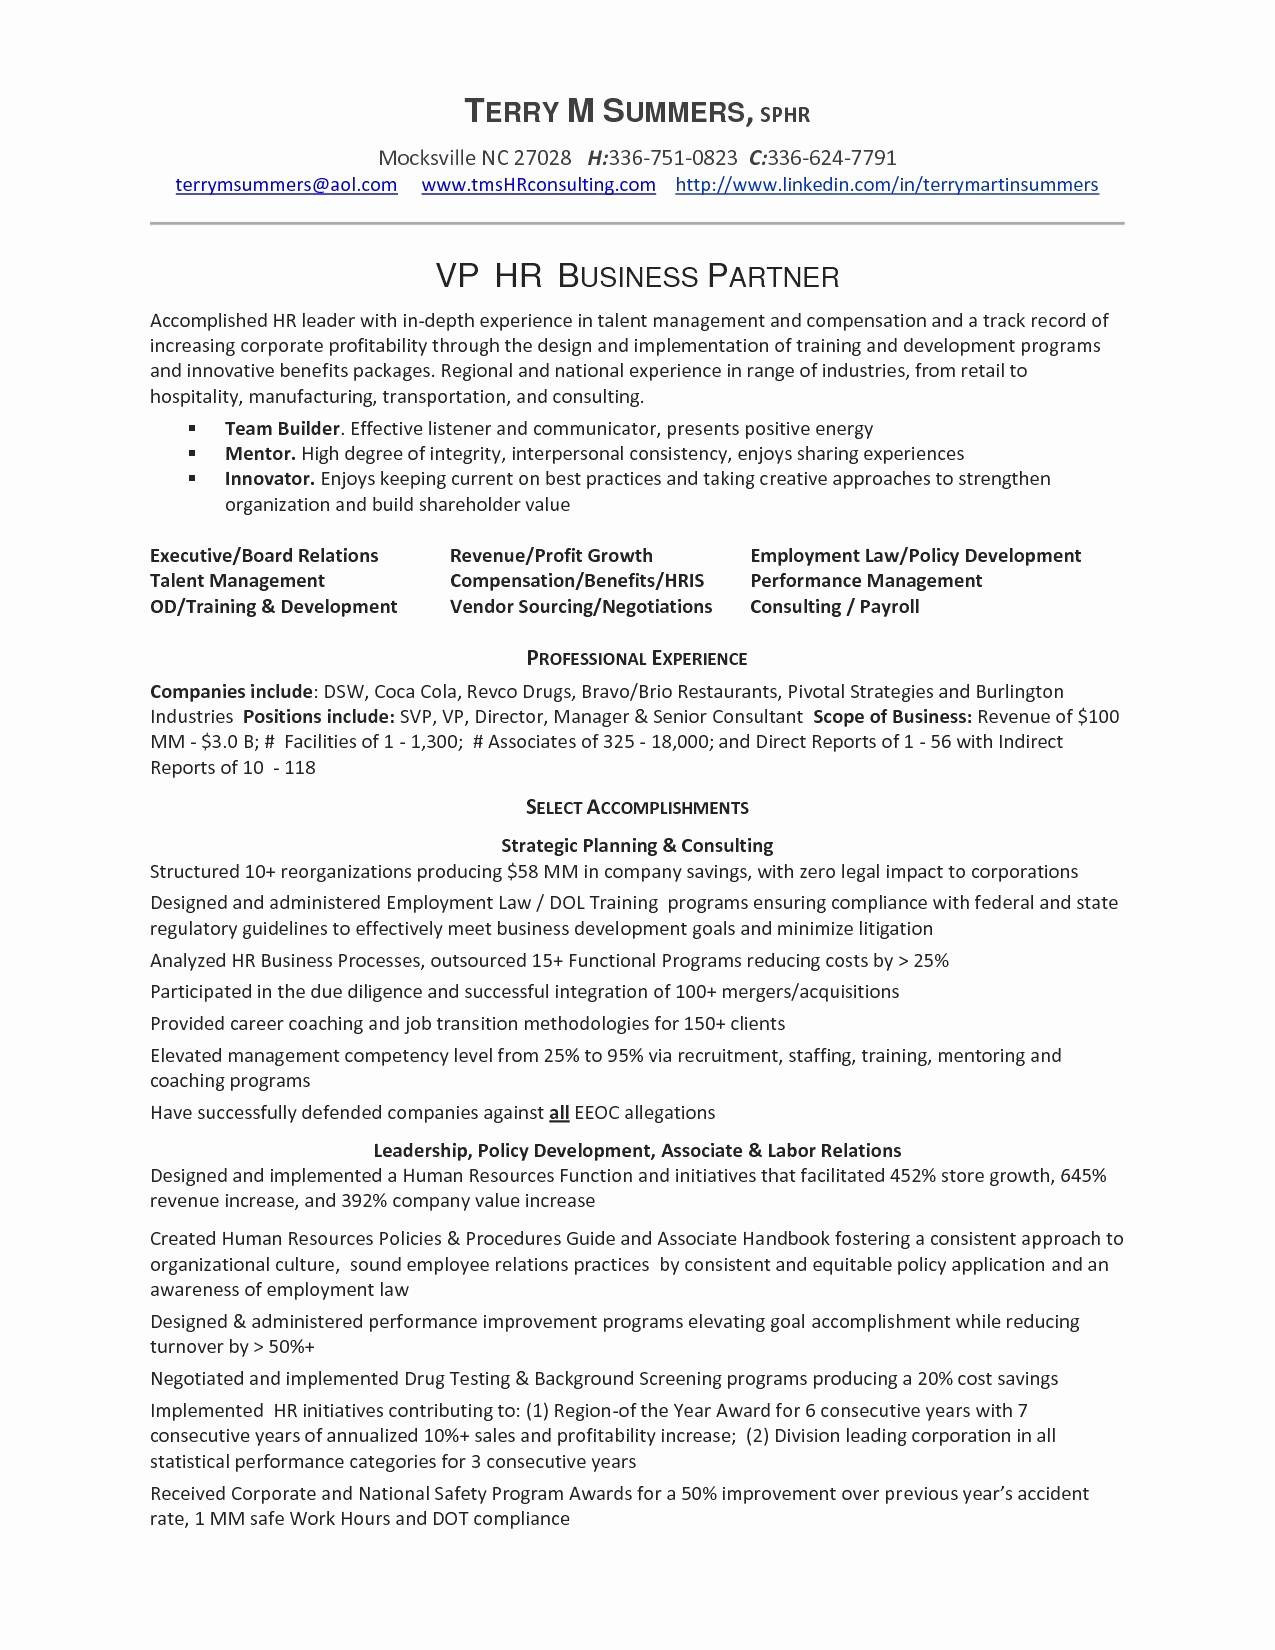 Collection Specialist Resume - Procurement Specialist Resume Samples Elegant Professional